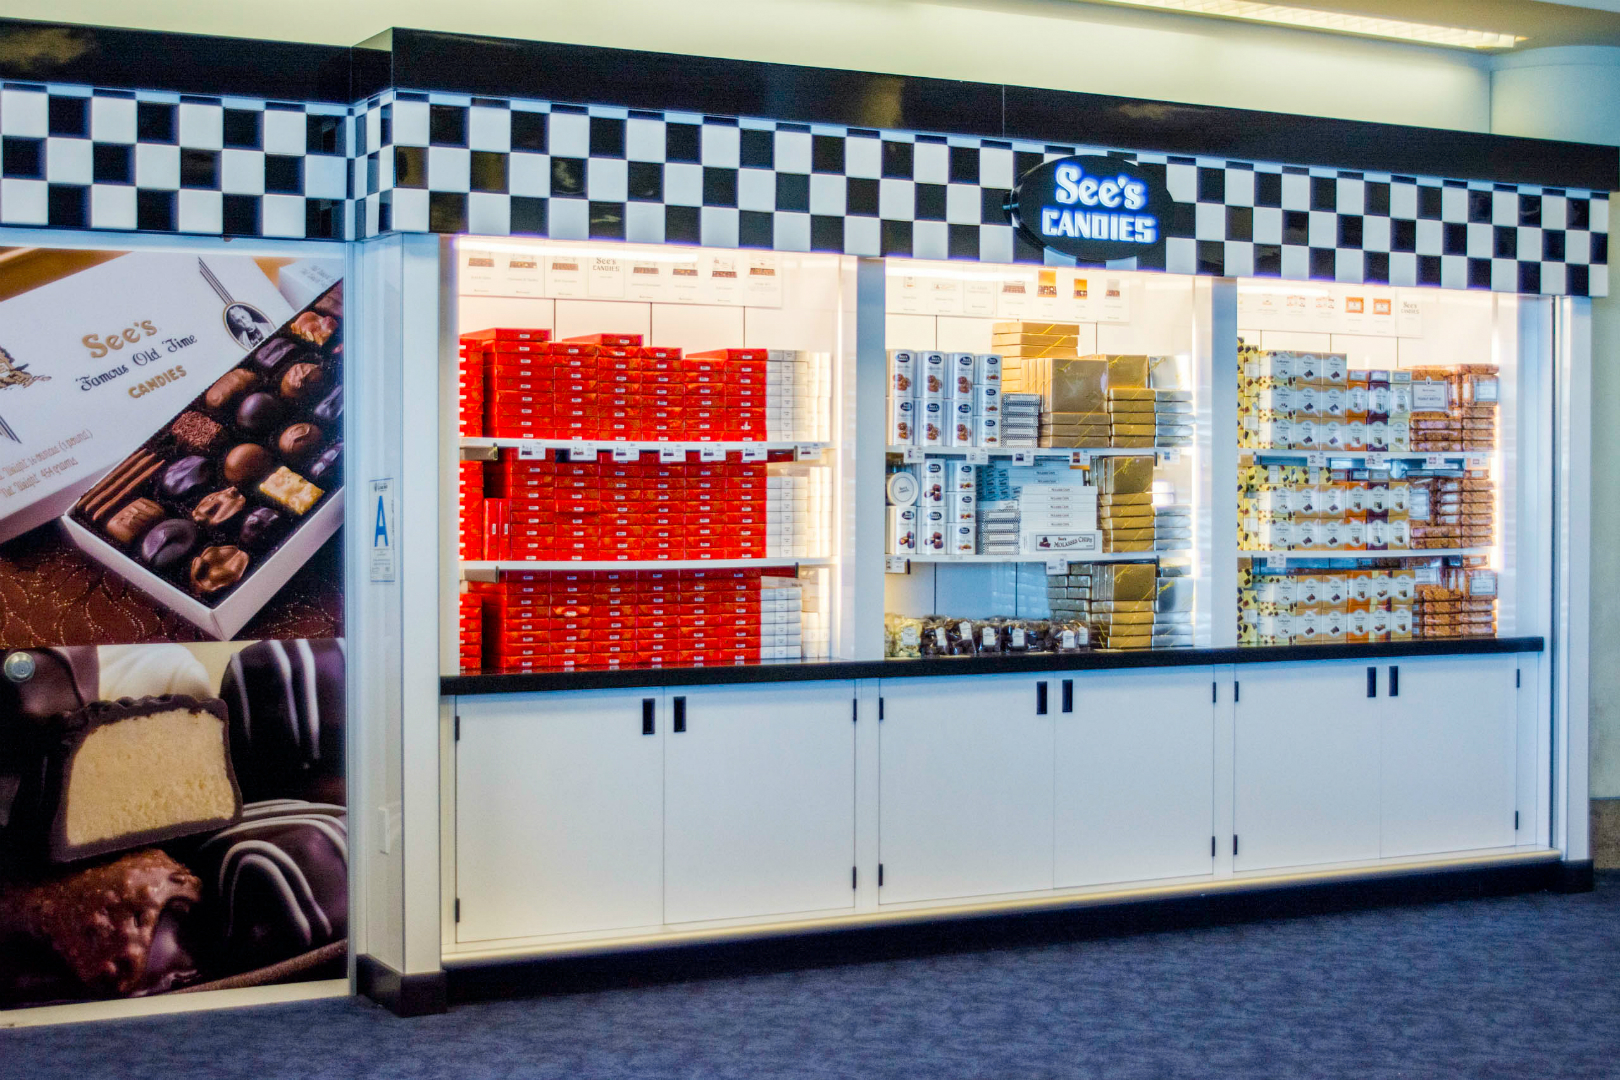 See's Candies Retail Display - LAX 02